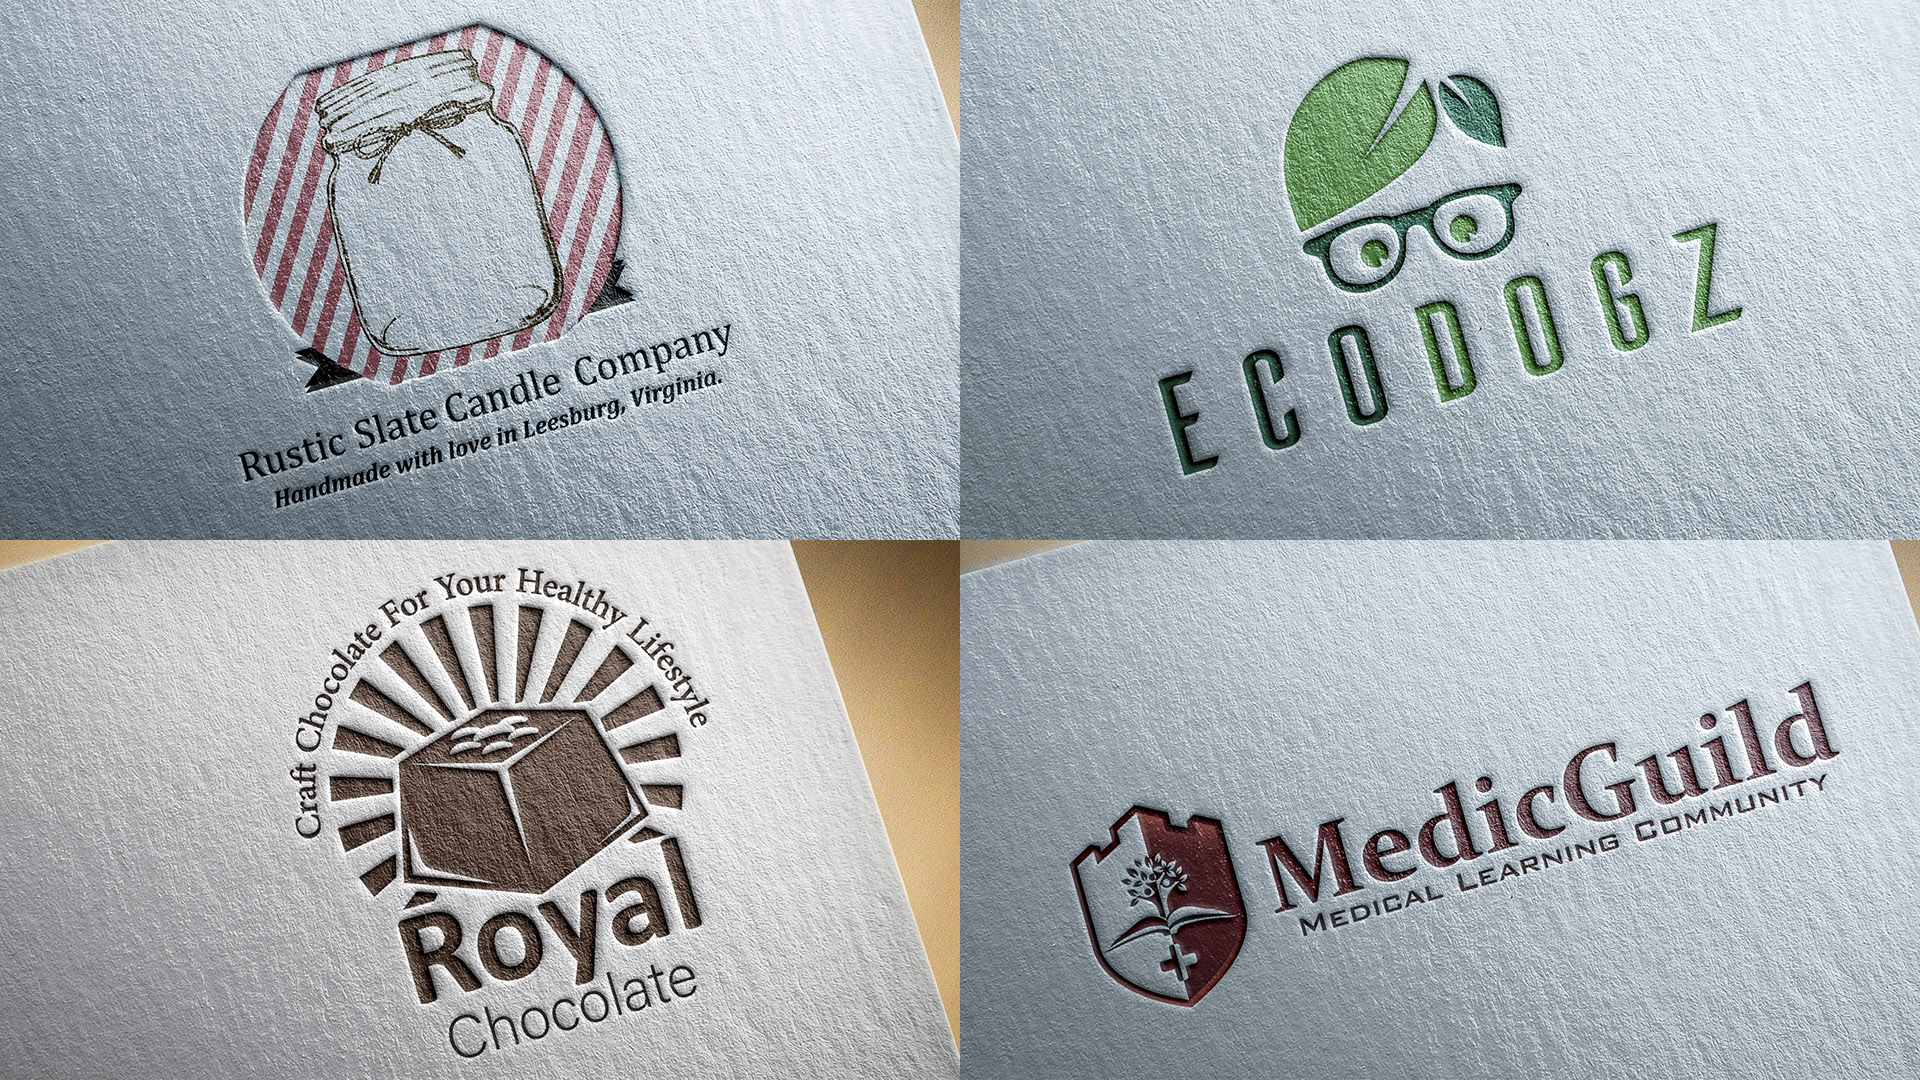 I'll design professional, eye catching, and beautiful logo for any brad